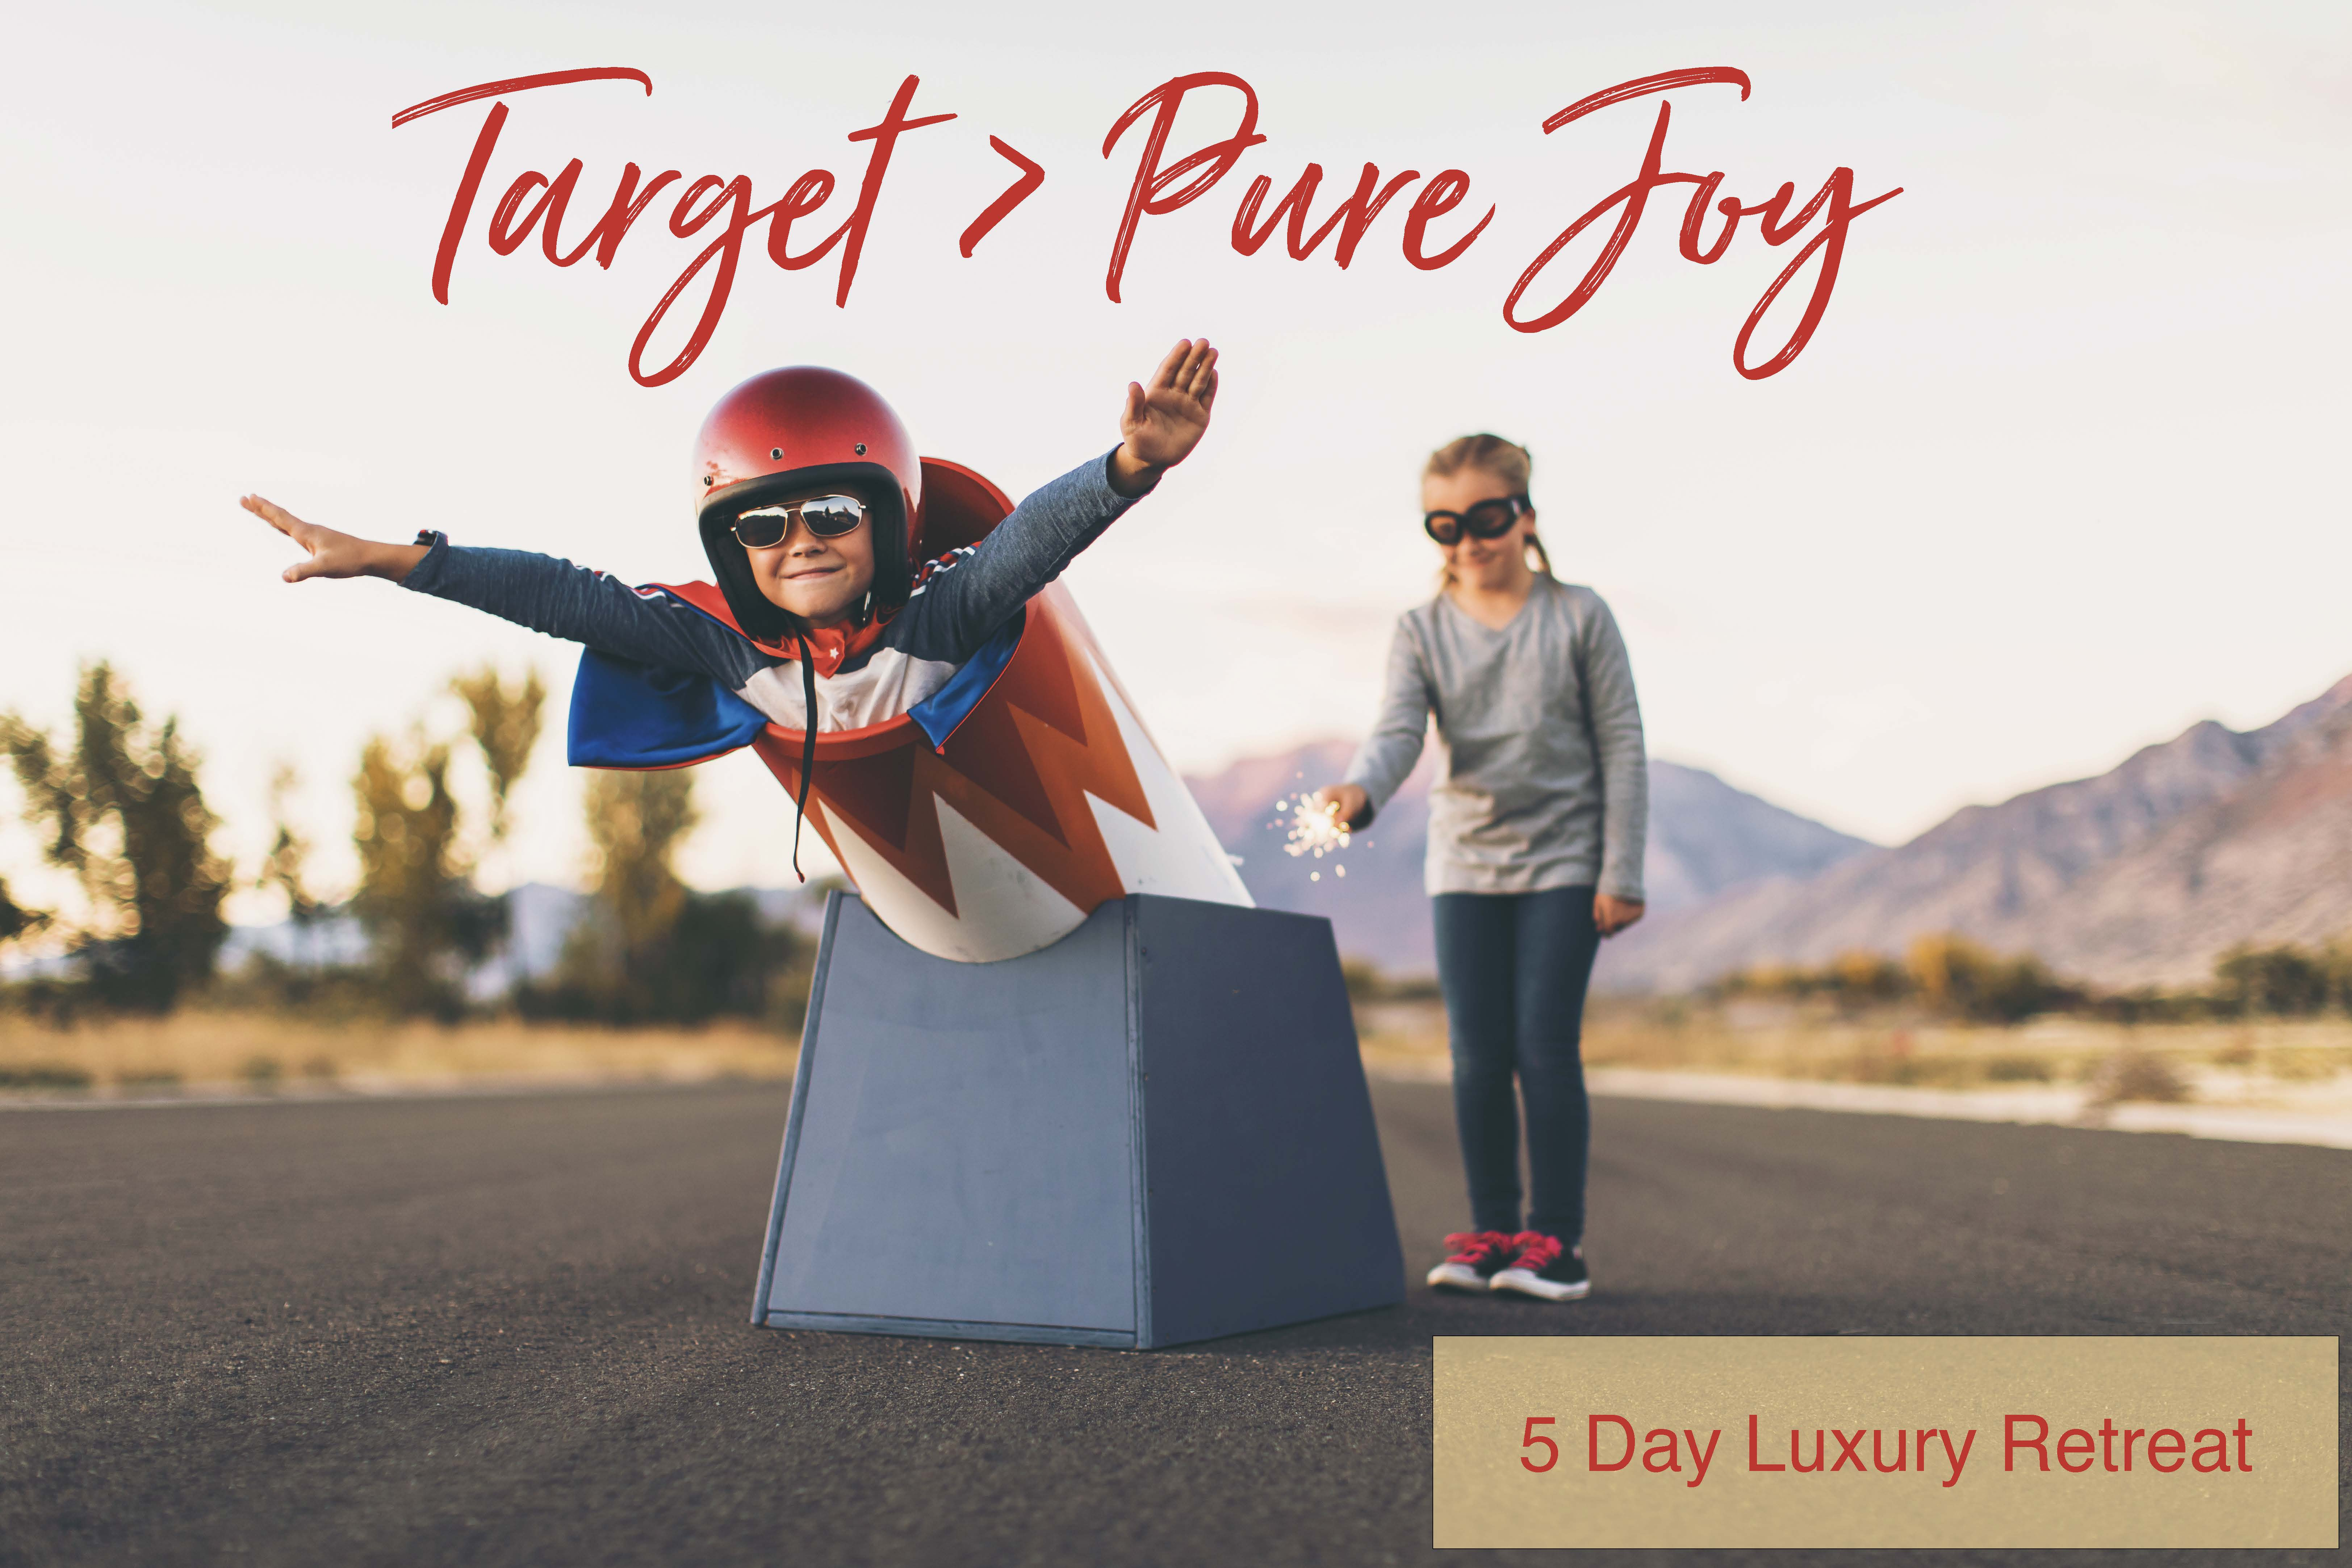 Target   Pure Joy Retreat Image